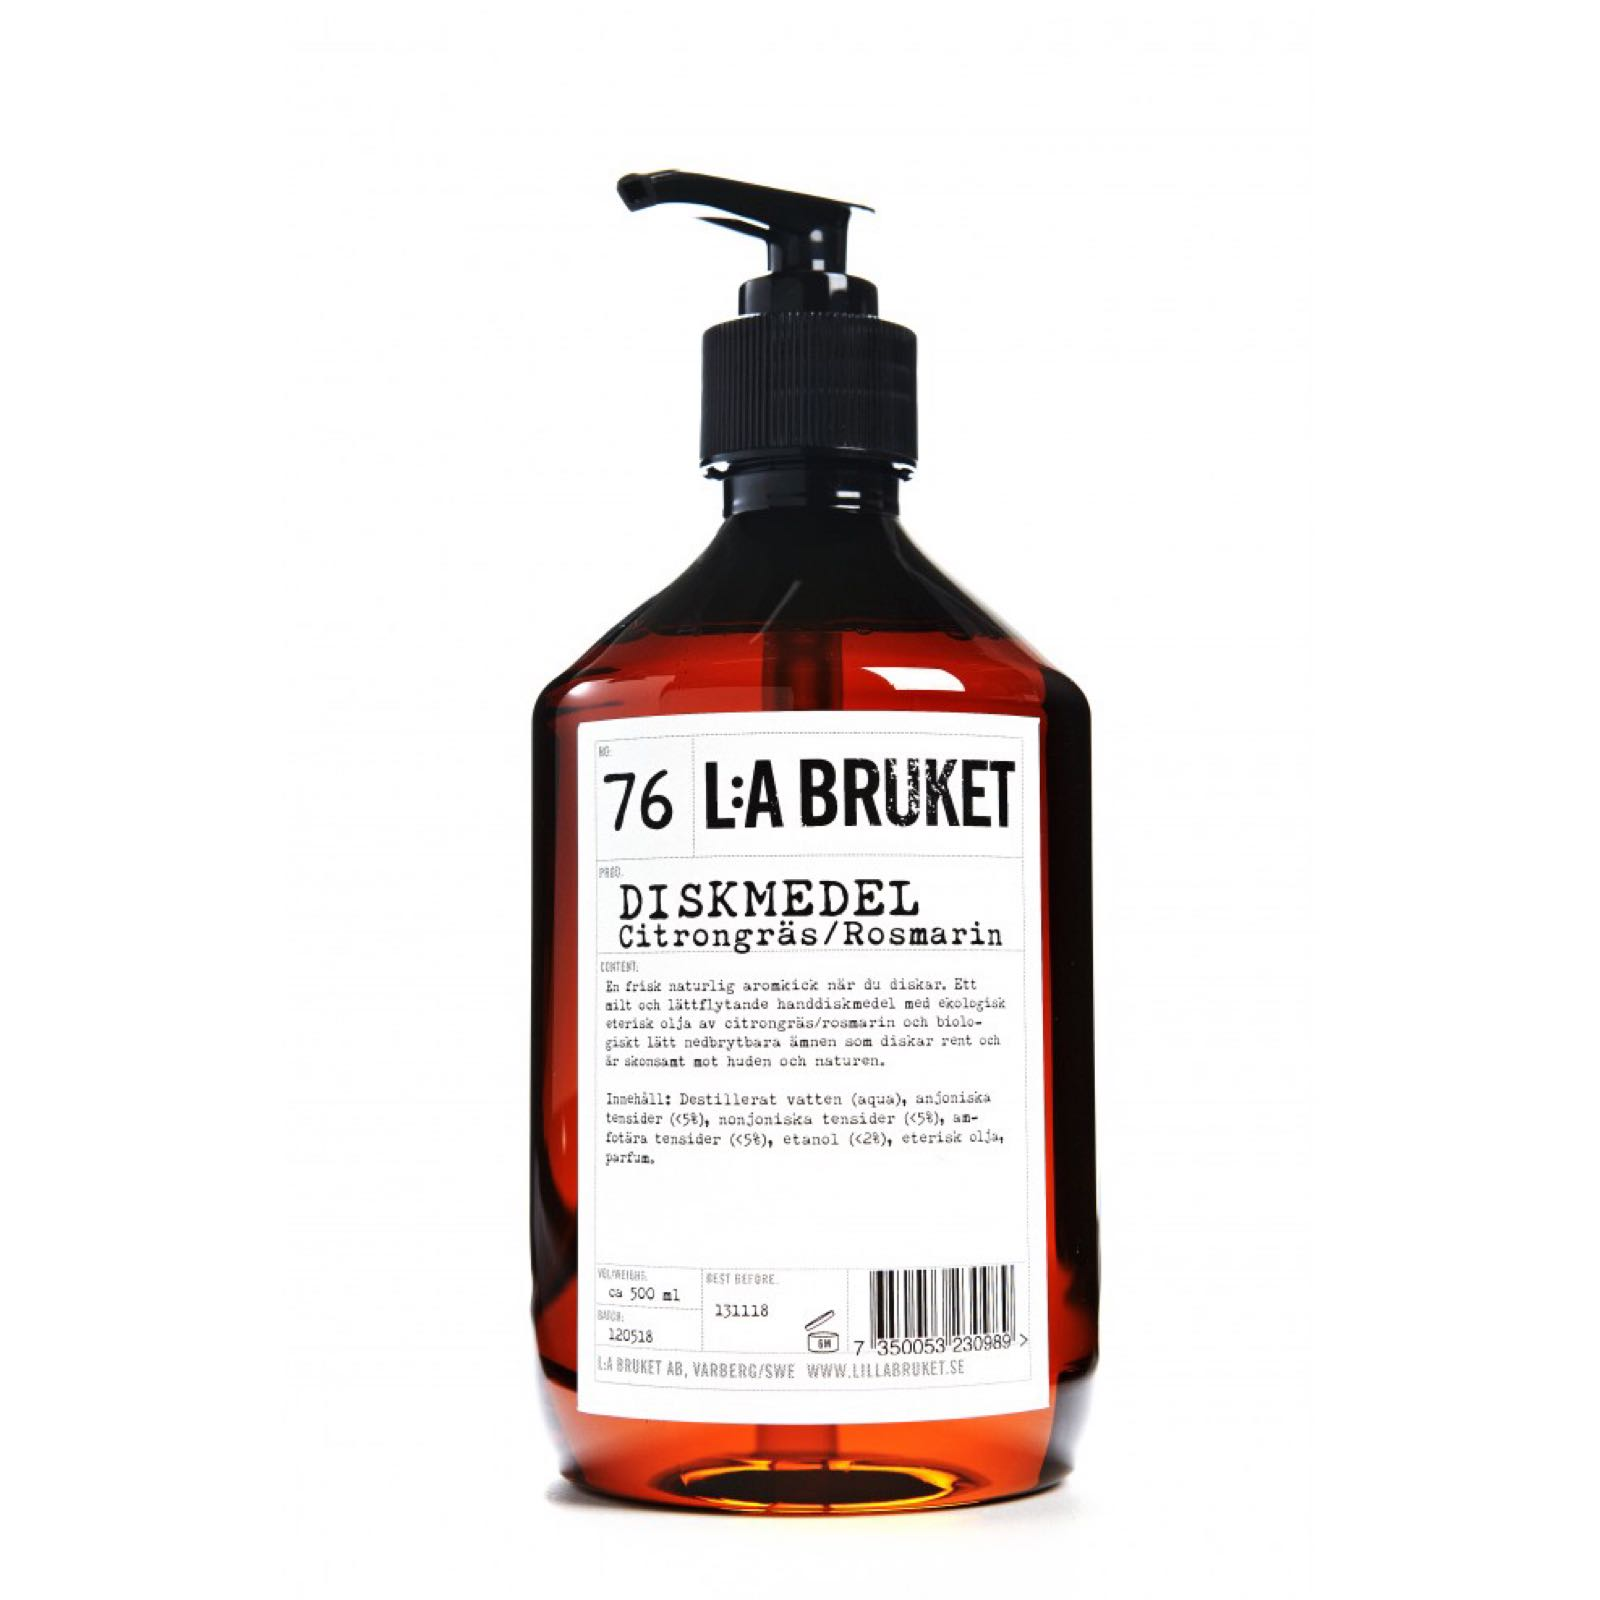 L:a bruket, diskmedel, dishwashing liquid, 500ml